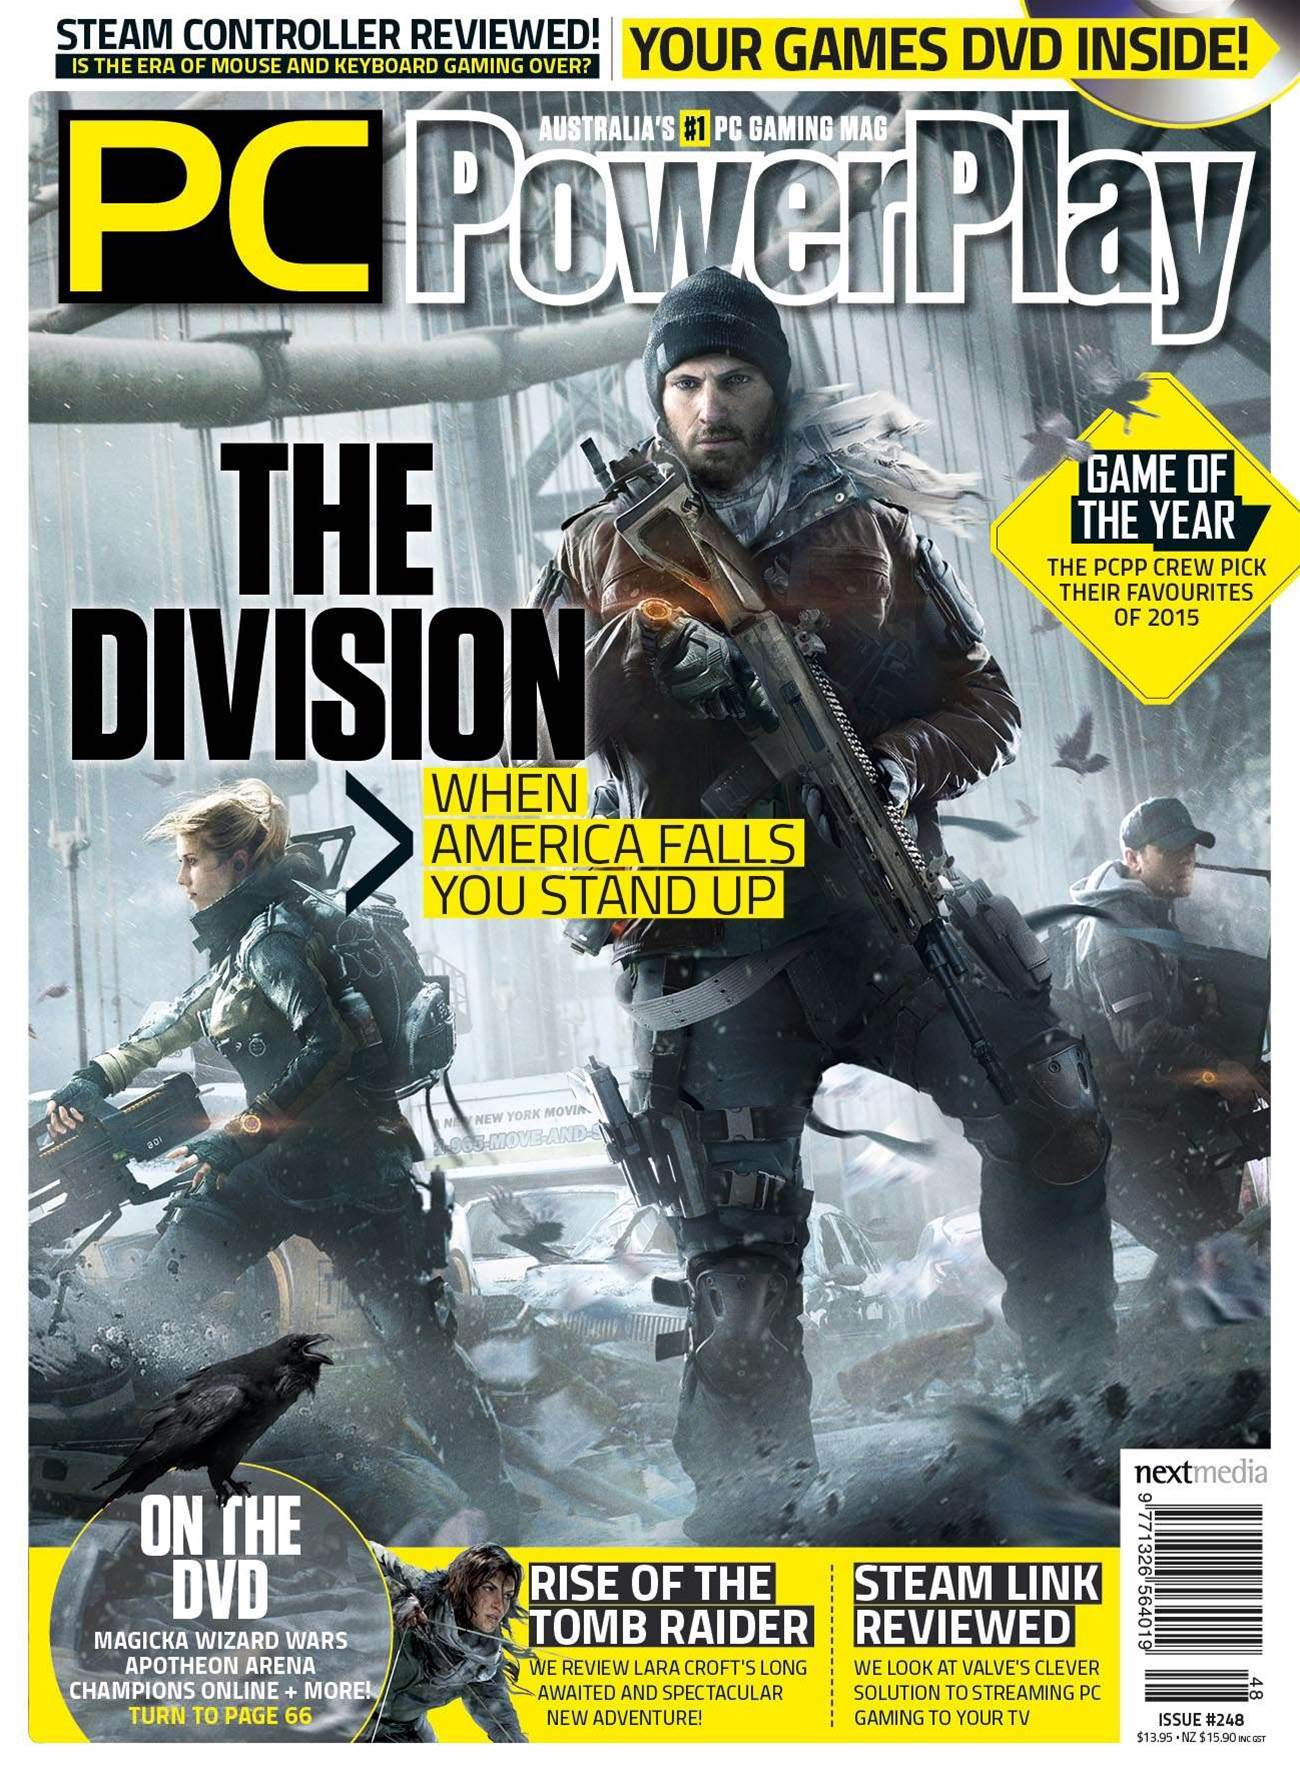 PC PowerPlay Issue #248 Out Now!